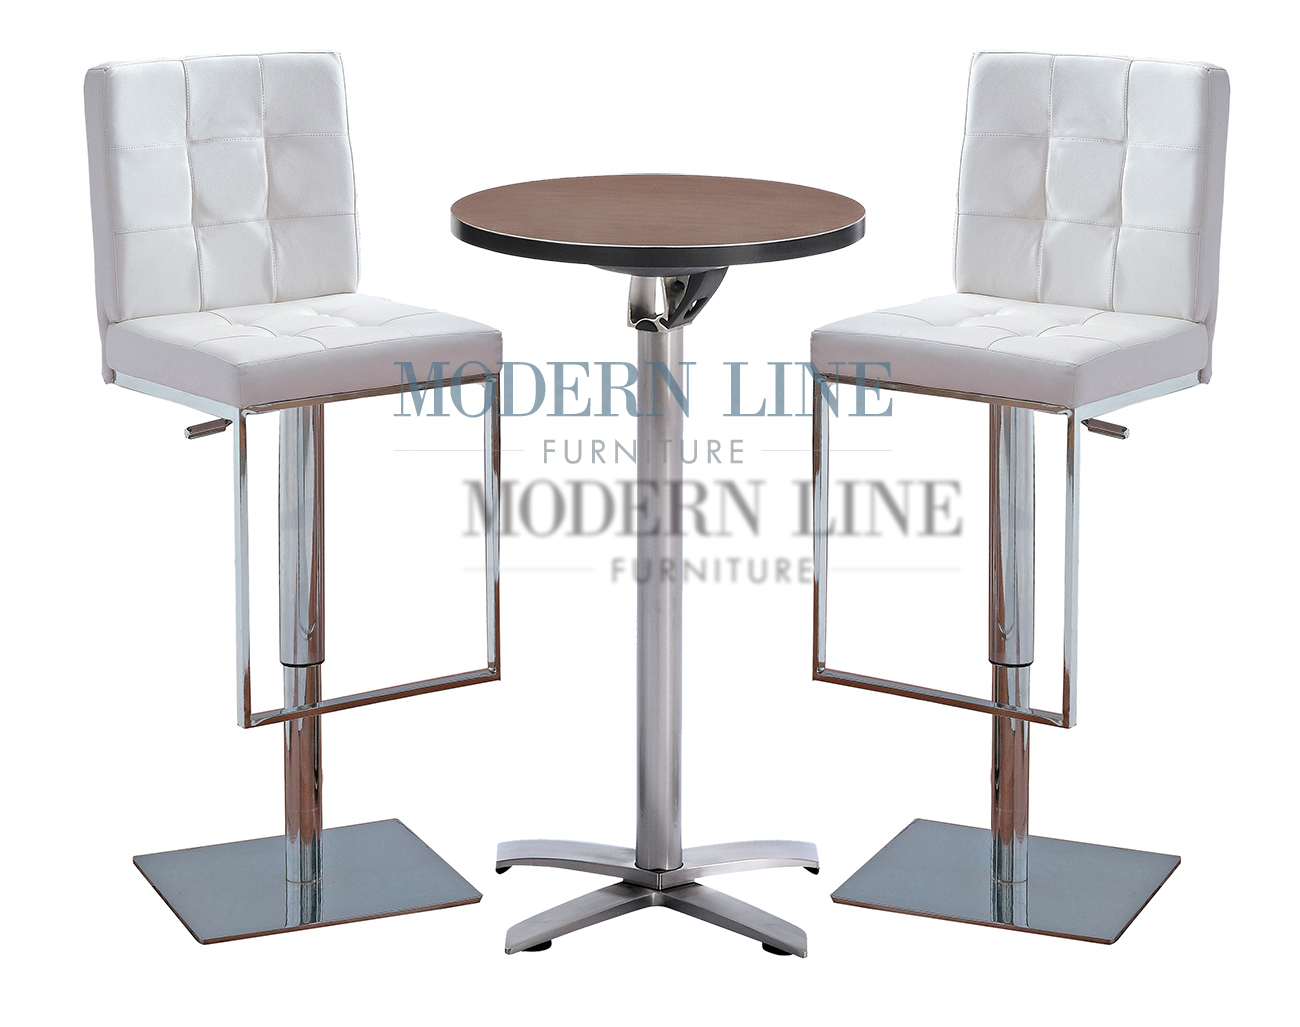 ... Modern Line Furniture Commercial Furniture Custom Made ...